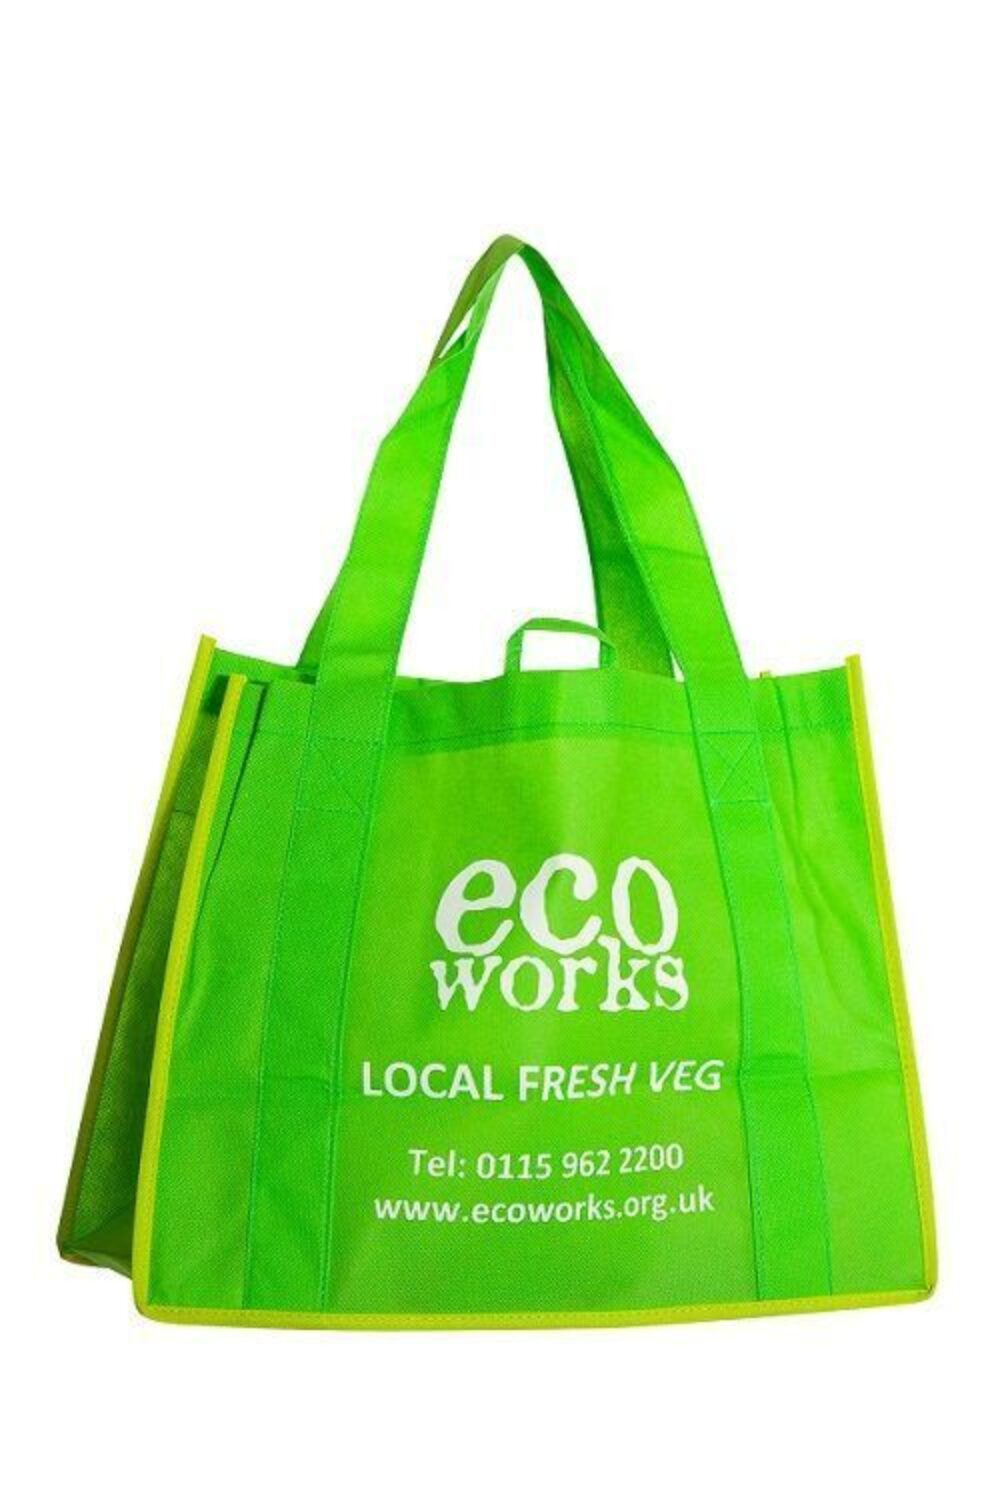 Ecoworks - Heavy Duty Bags Delivering Produce